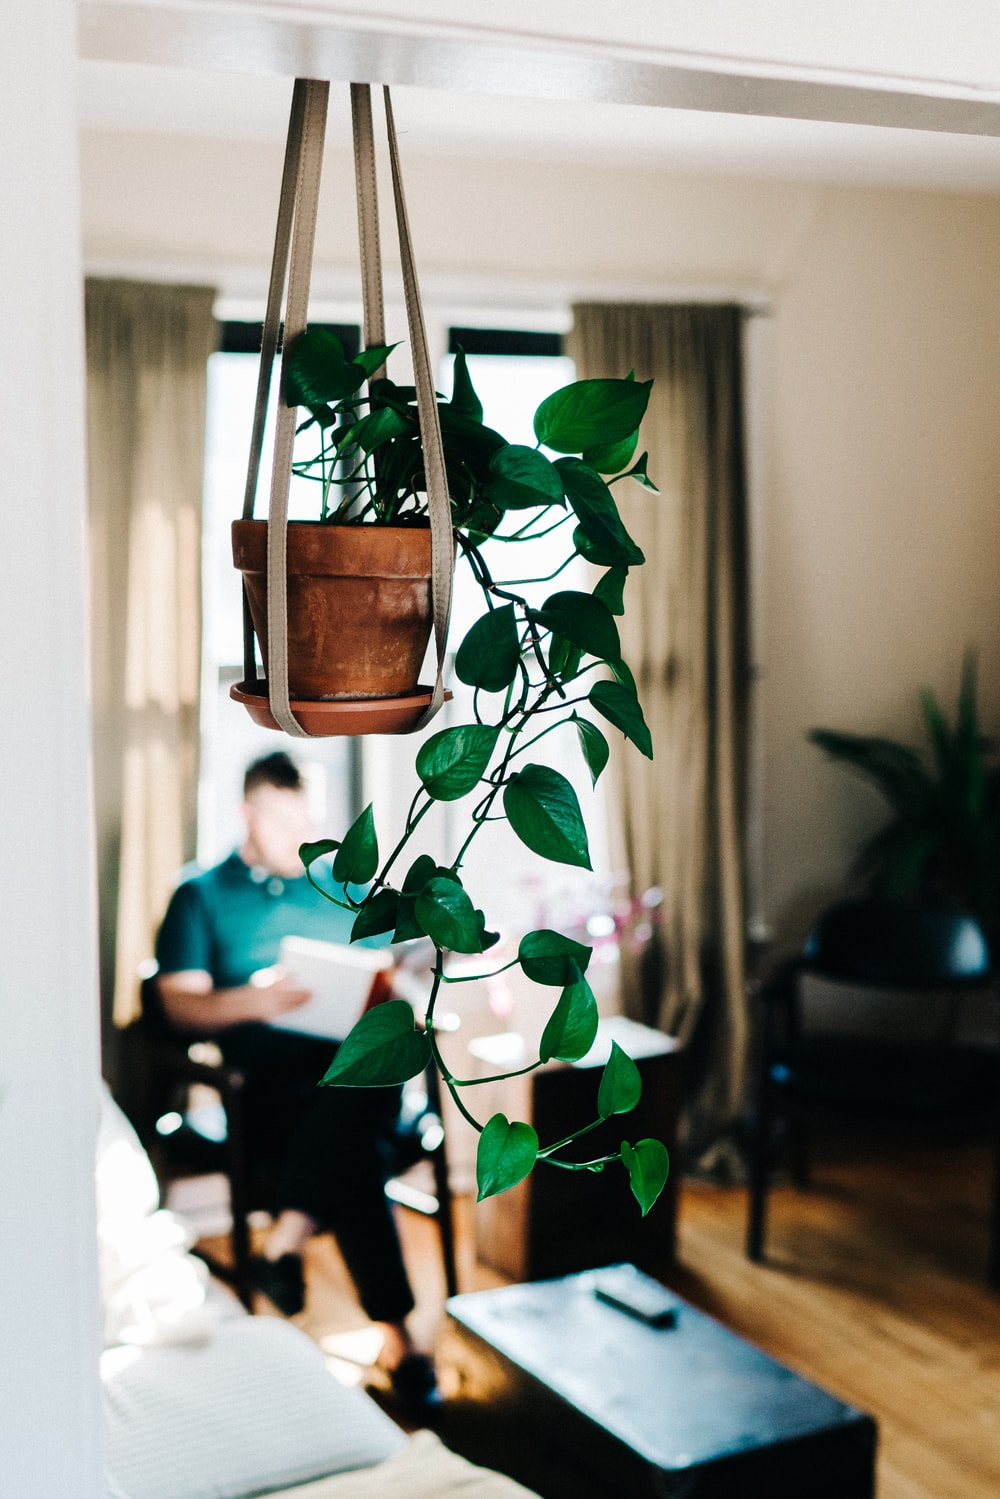 green leafy plant hanging on brown ceramic flowerpot